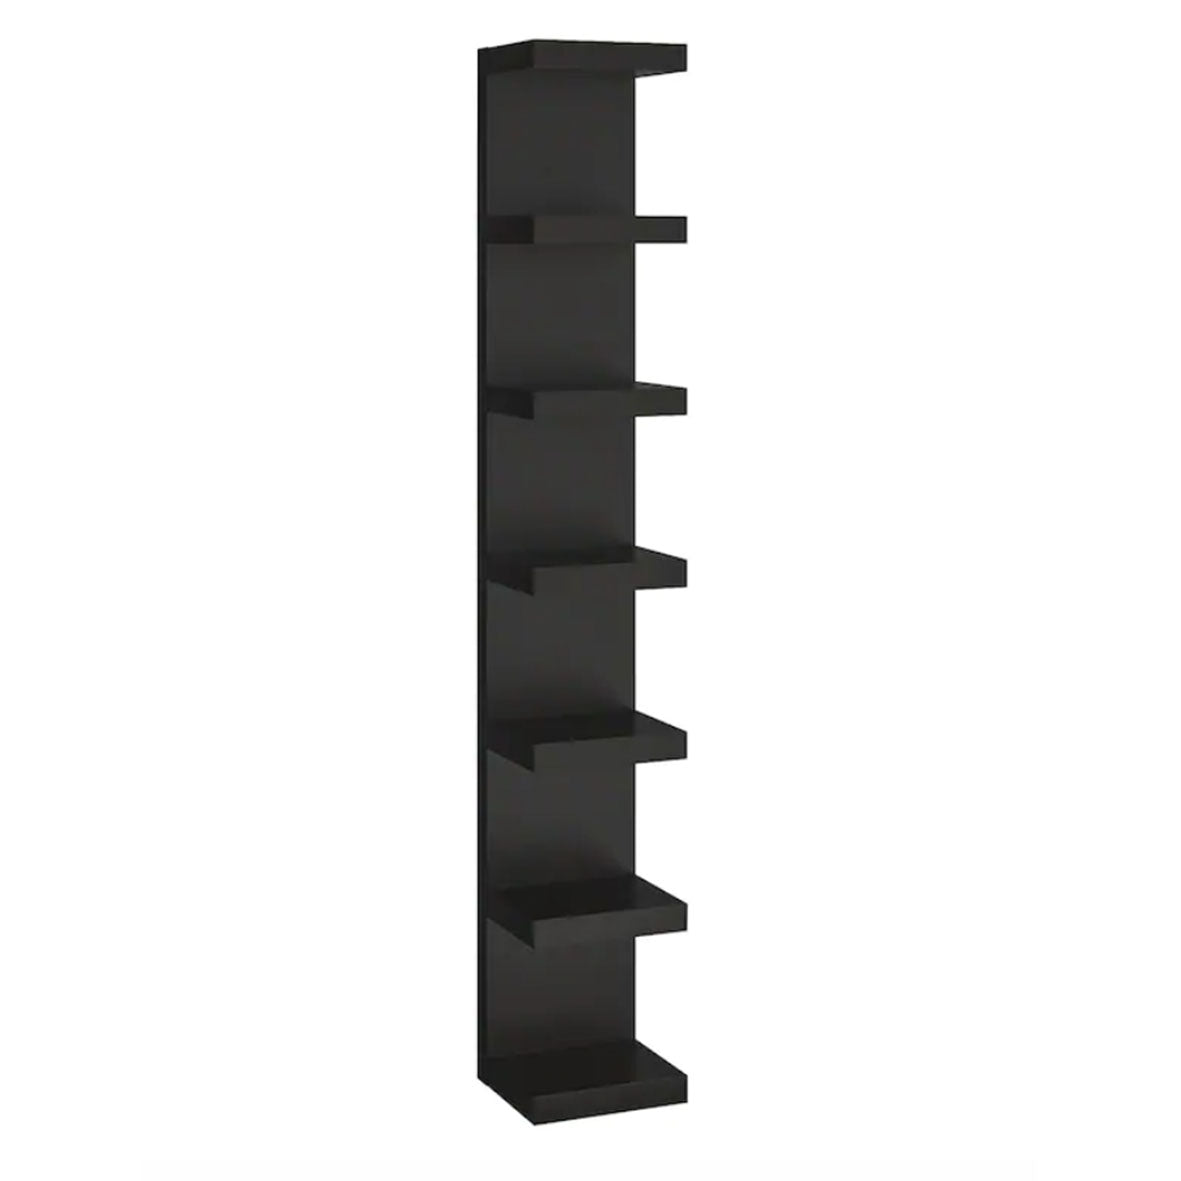 IKEA Lack Wall Shelf Unit 30x190cm, Black/Brown